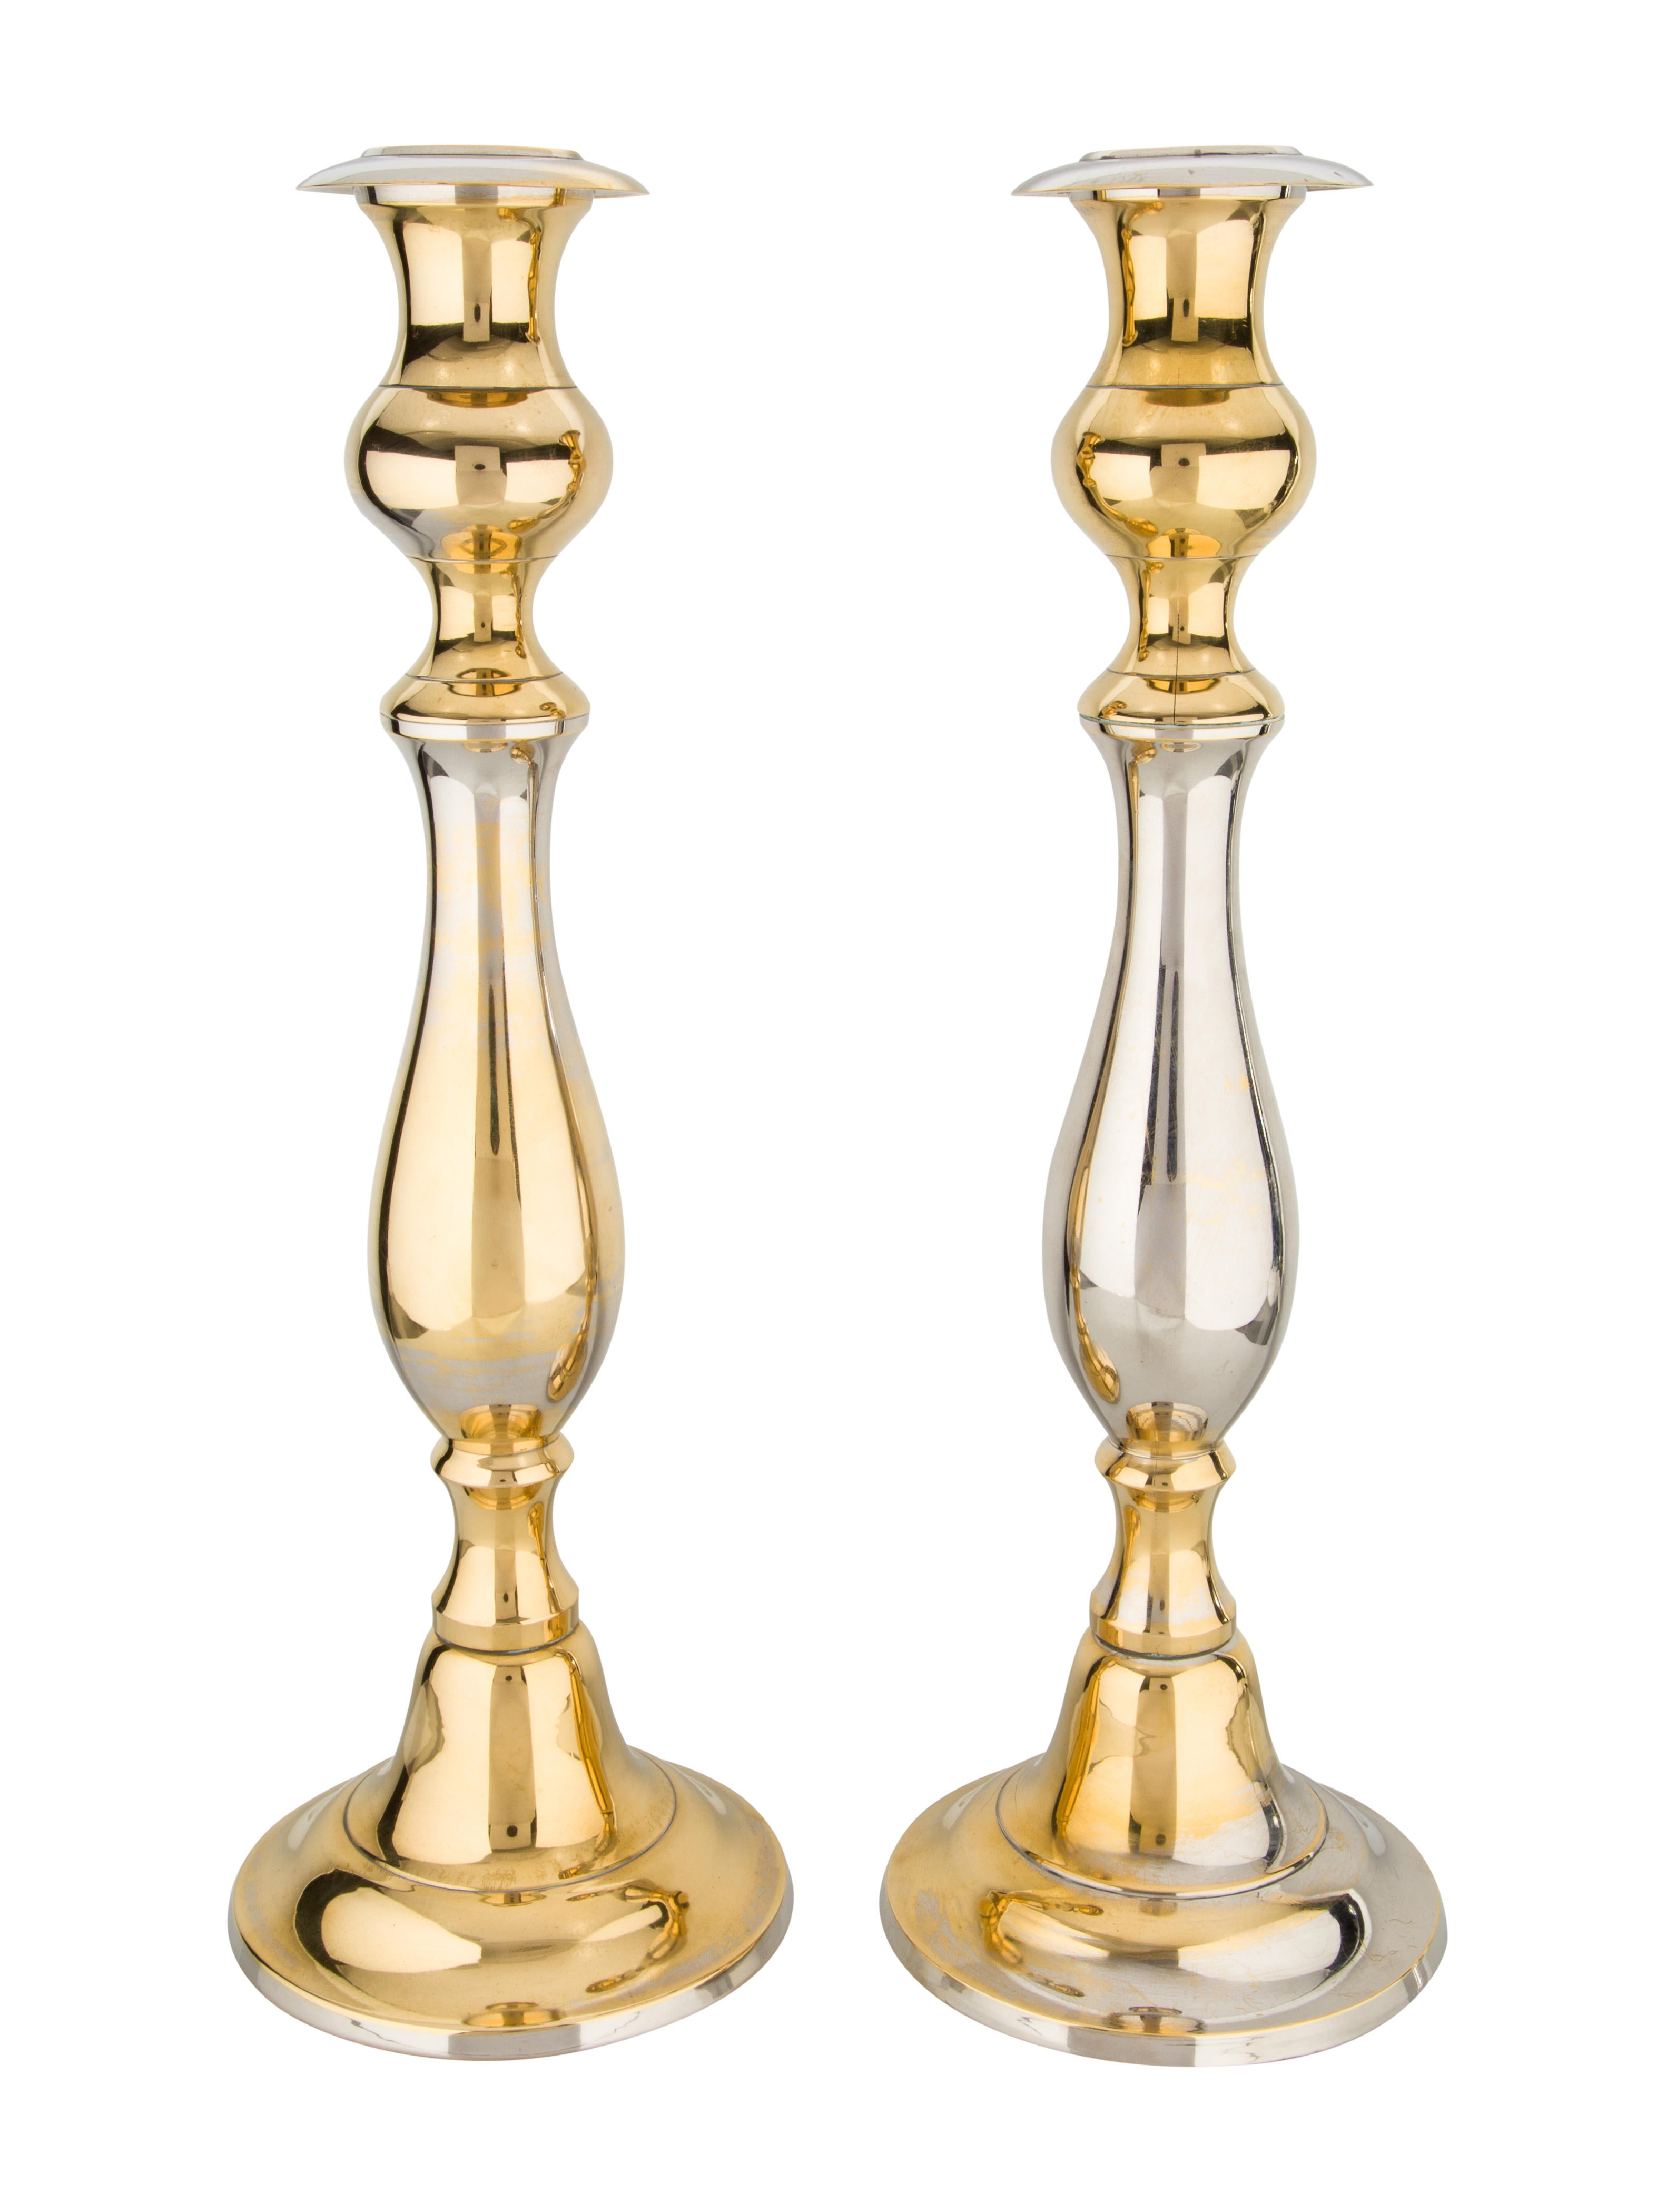 Pair of silverplate candlesticks decor and accessories decor21424 the realreal Home decor candlesticks